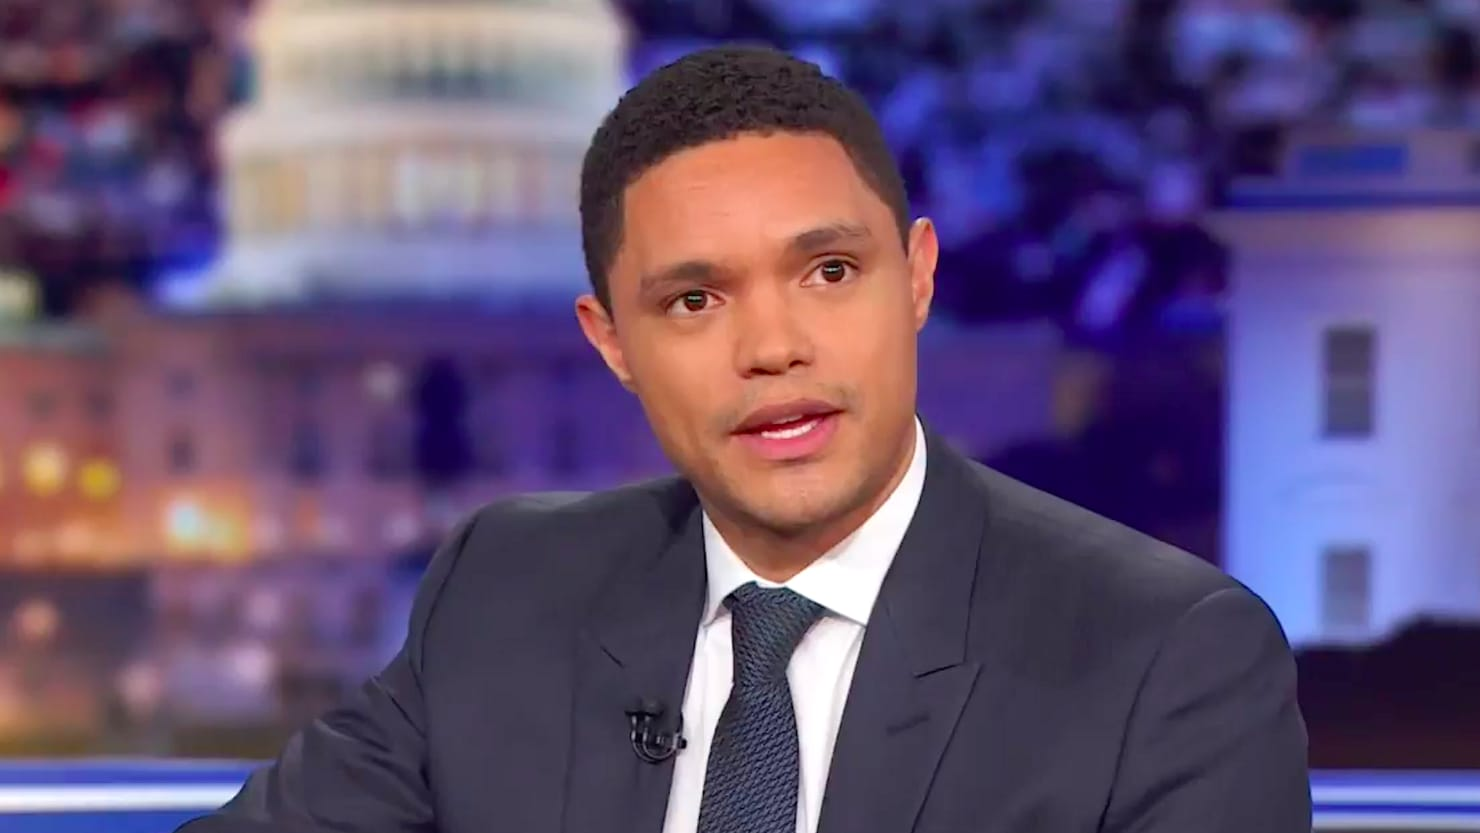 Trevor Noah's Powerful Message on Trump and Male Victimhood During #MeToo